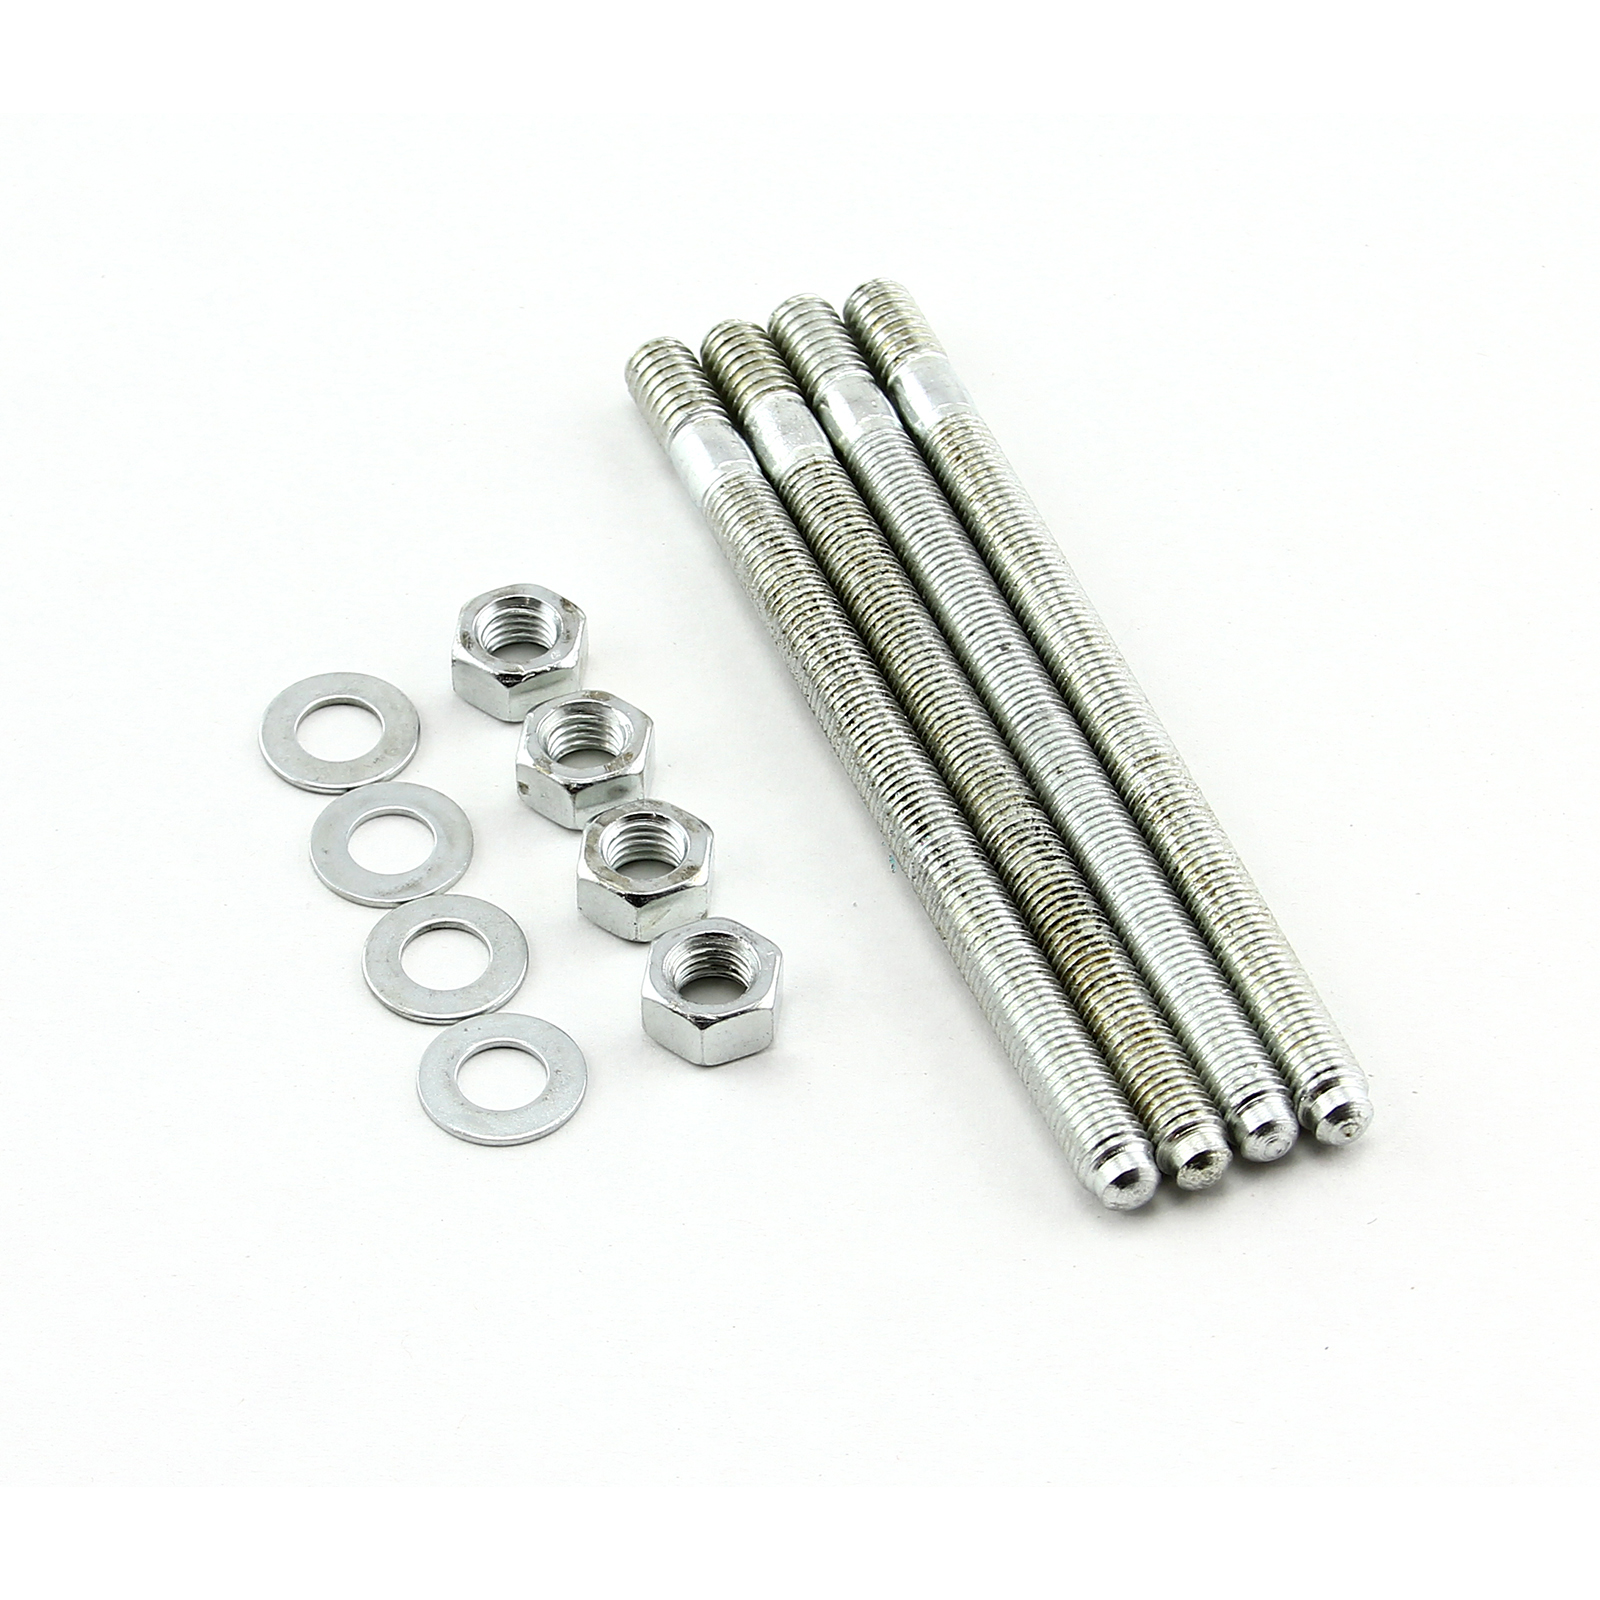 "Carburetor Stud Set Kit - 5/16-18/24"" x 3.825"""